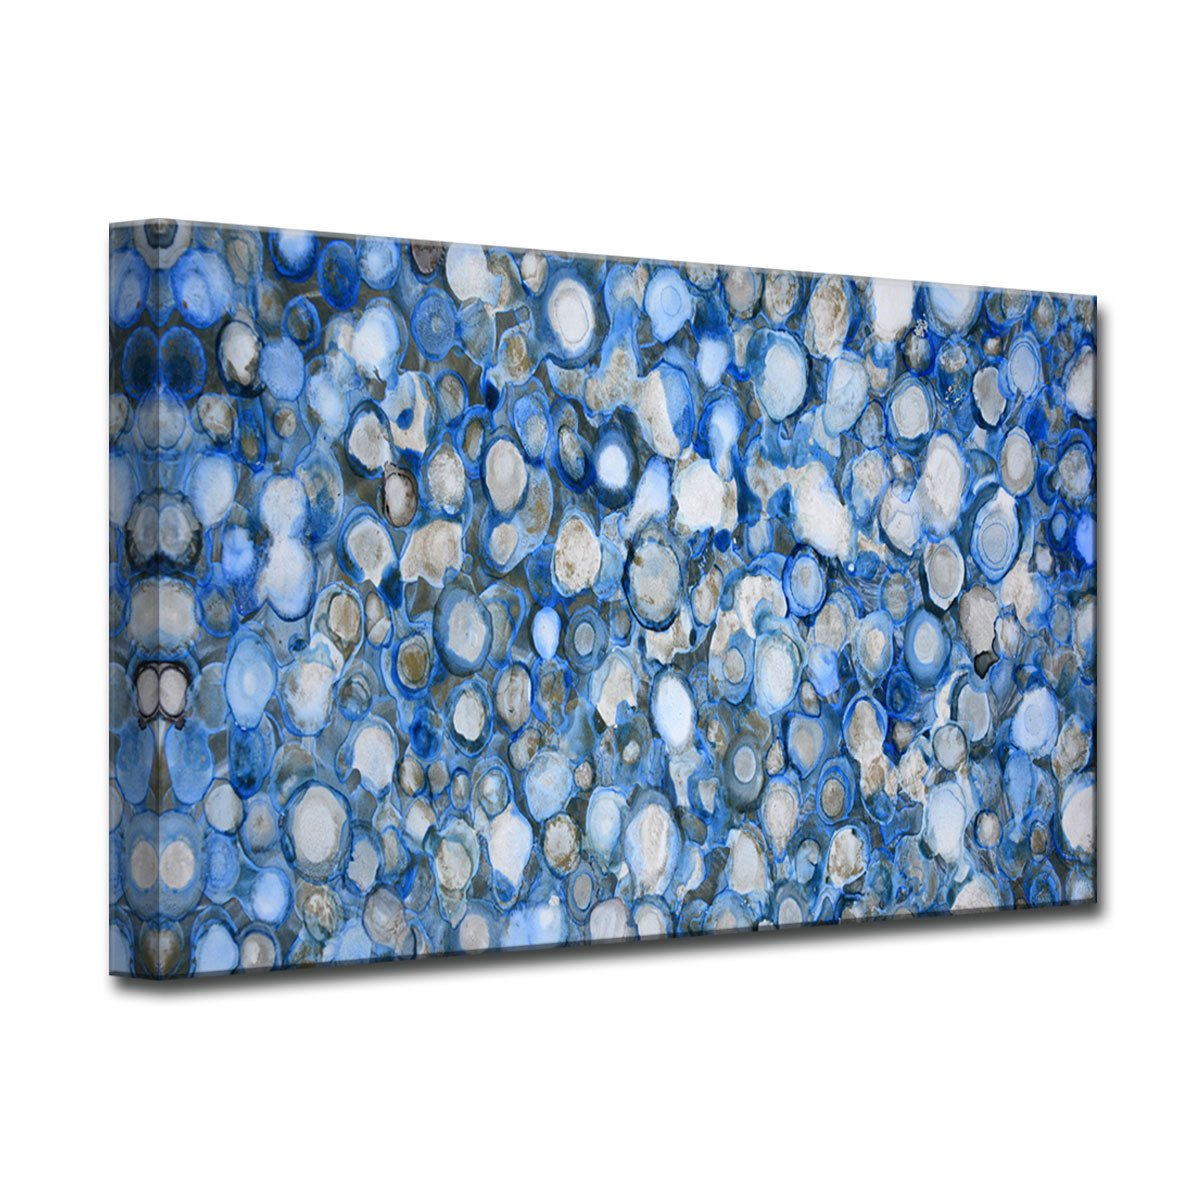 //cdn.shopify.com/s/files/1/1380/7725/products/Ready2HangArt-Arctic-River-Stones-by-Norman-Wyatt-Jr.-Canvas-Art-2d43af3d-3085-4595-82df-56ce564bffa6.jpg?v=1518233246